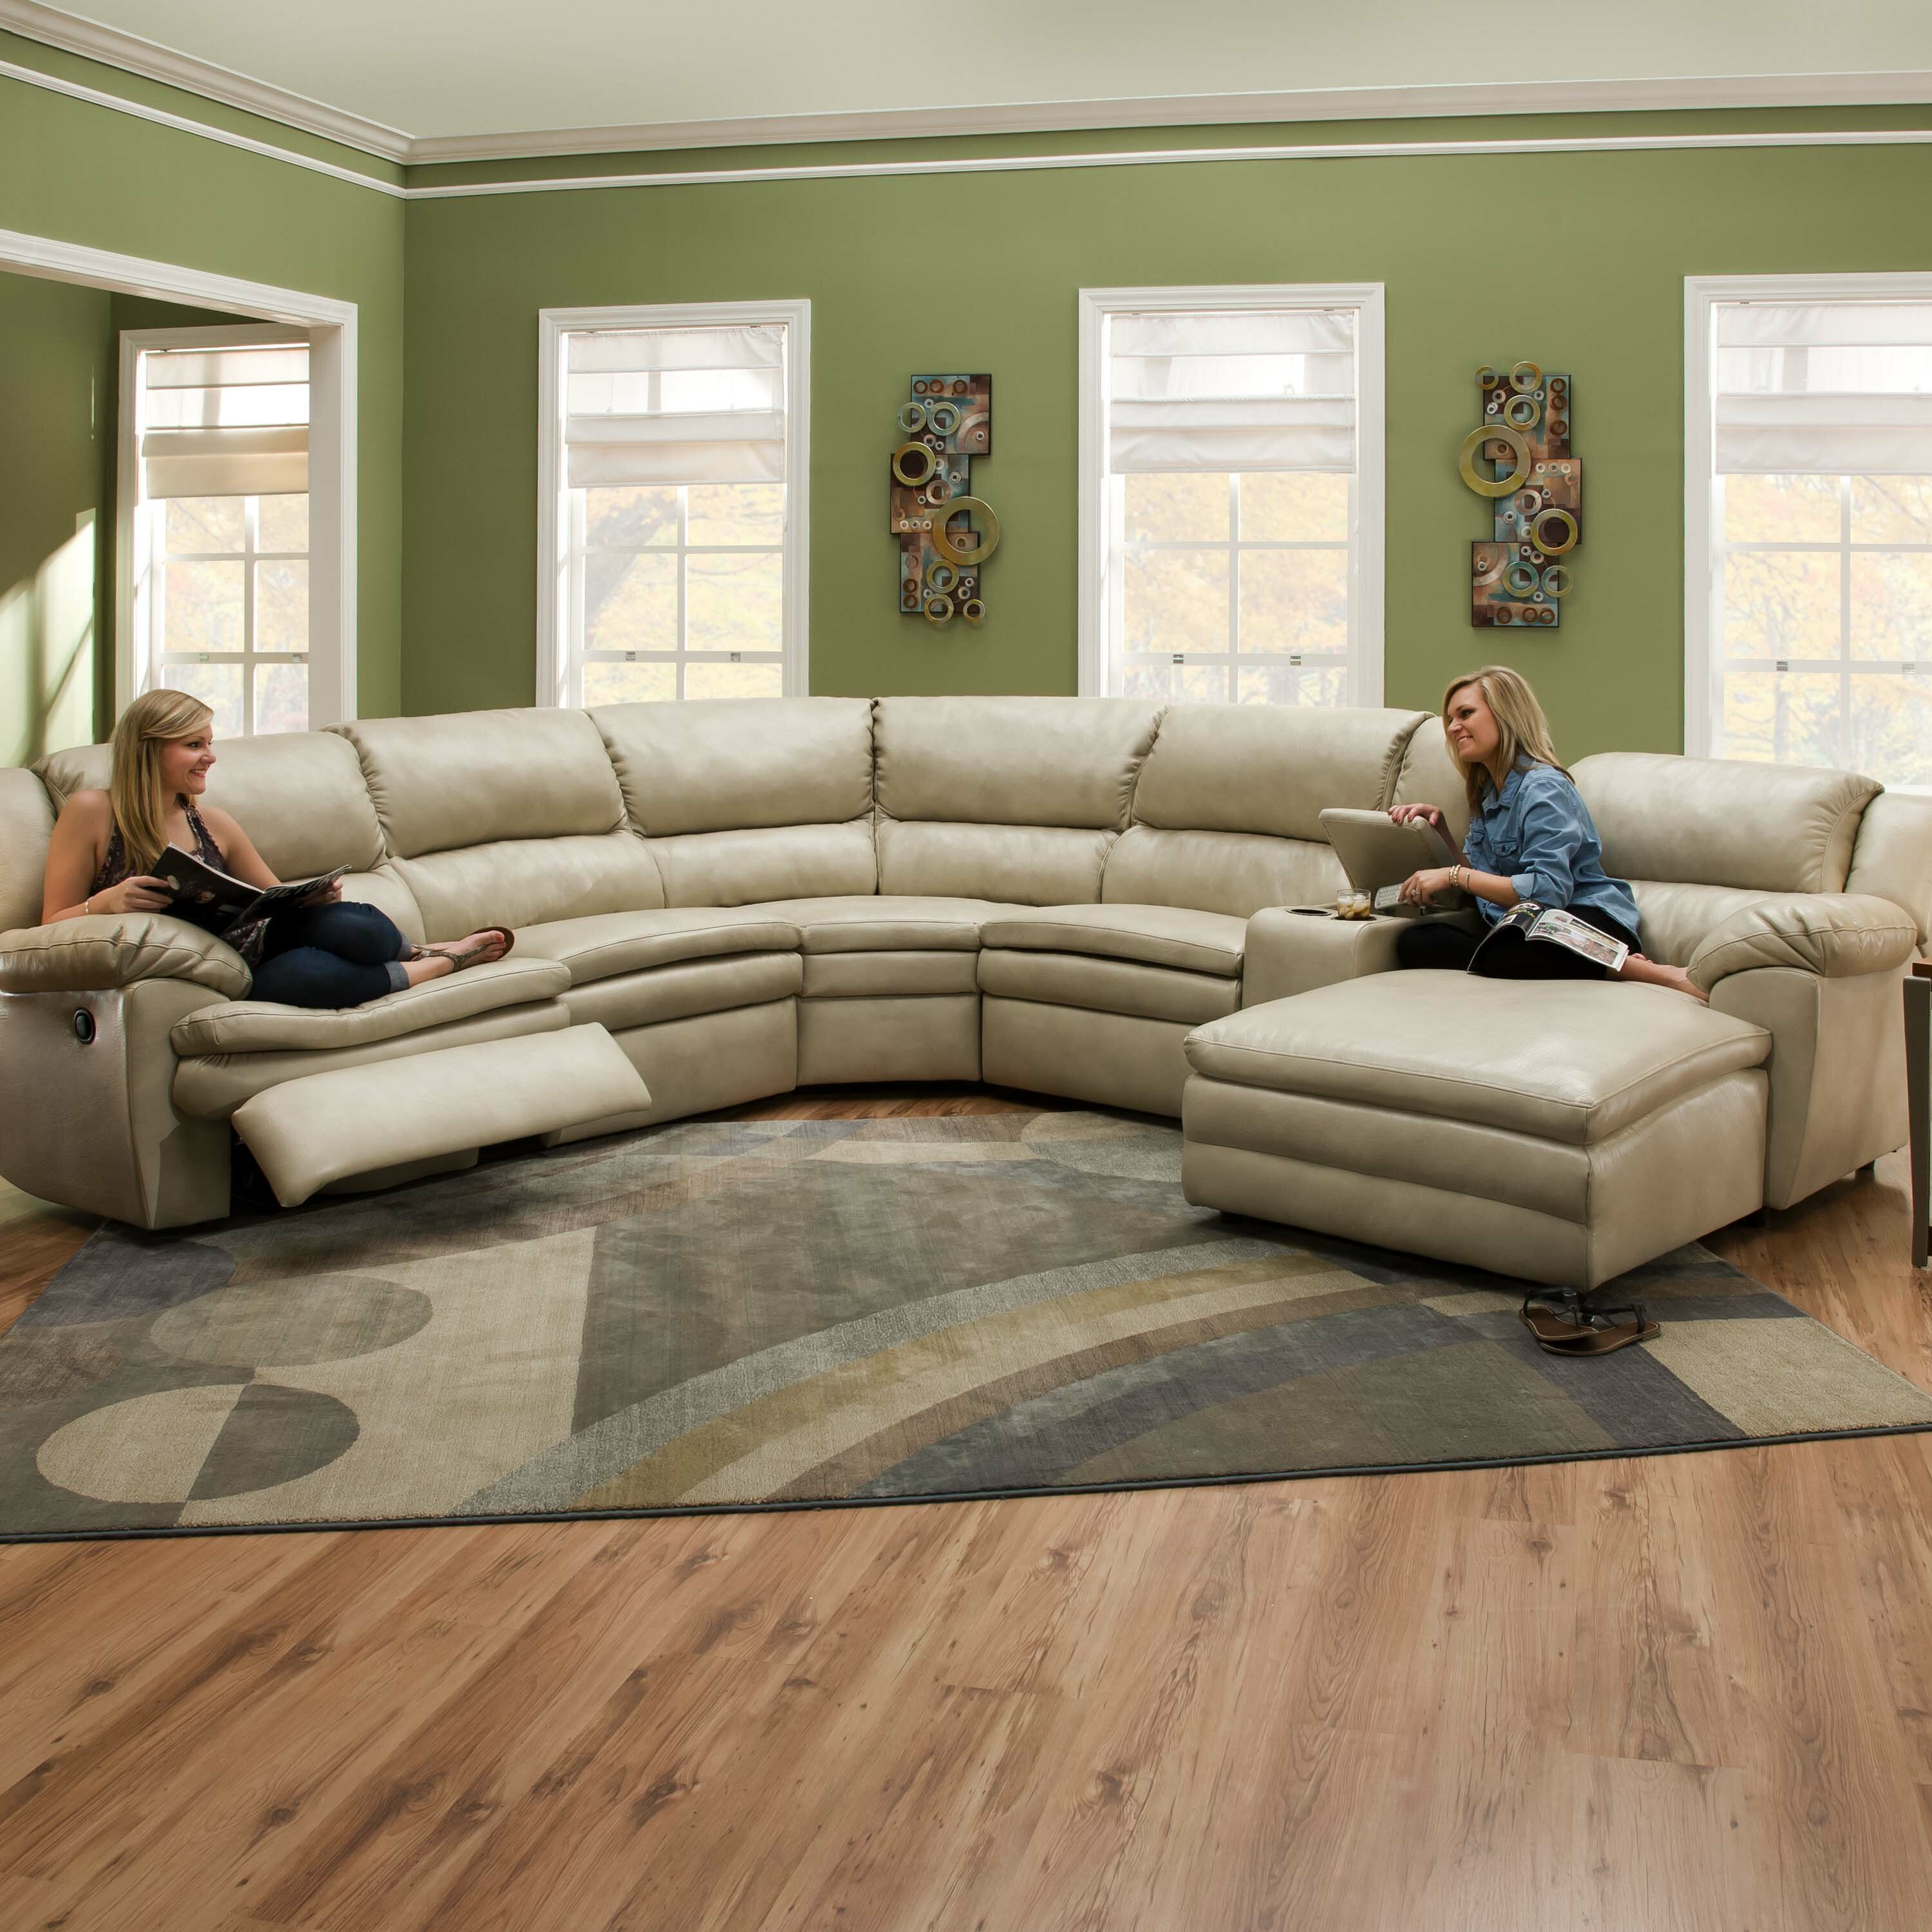 Simmons upholstery editor sectional reviews wayfair for Simmons sectional sofa covers